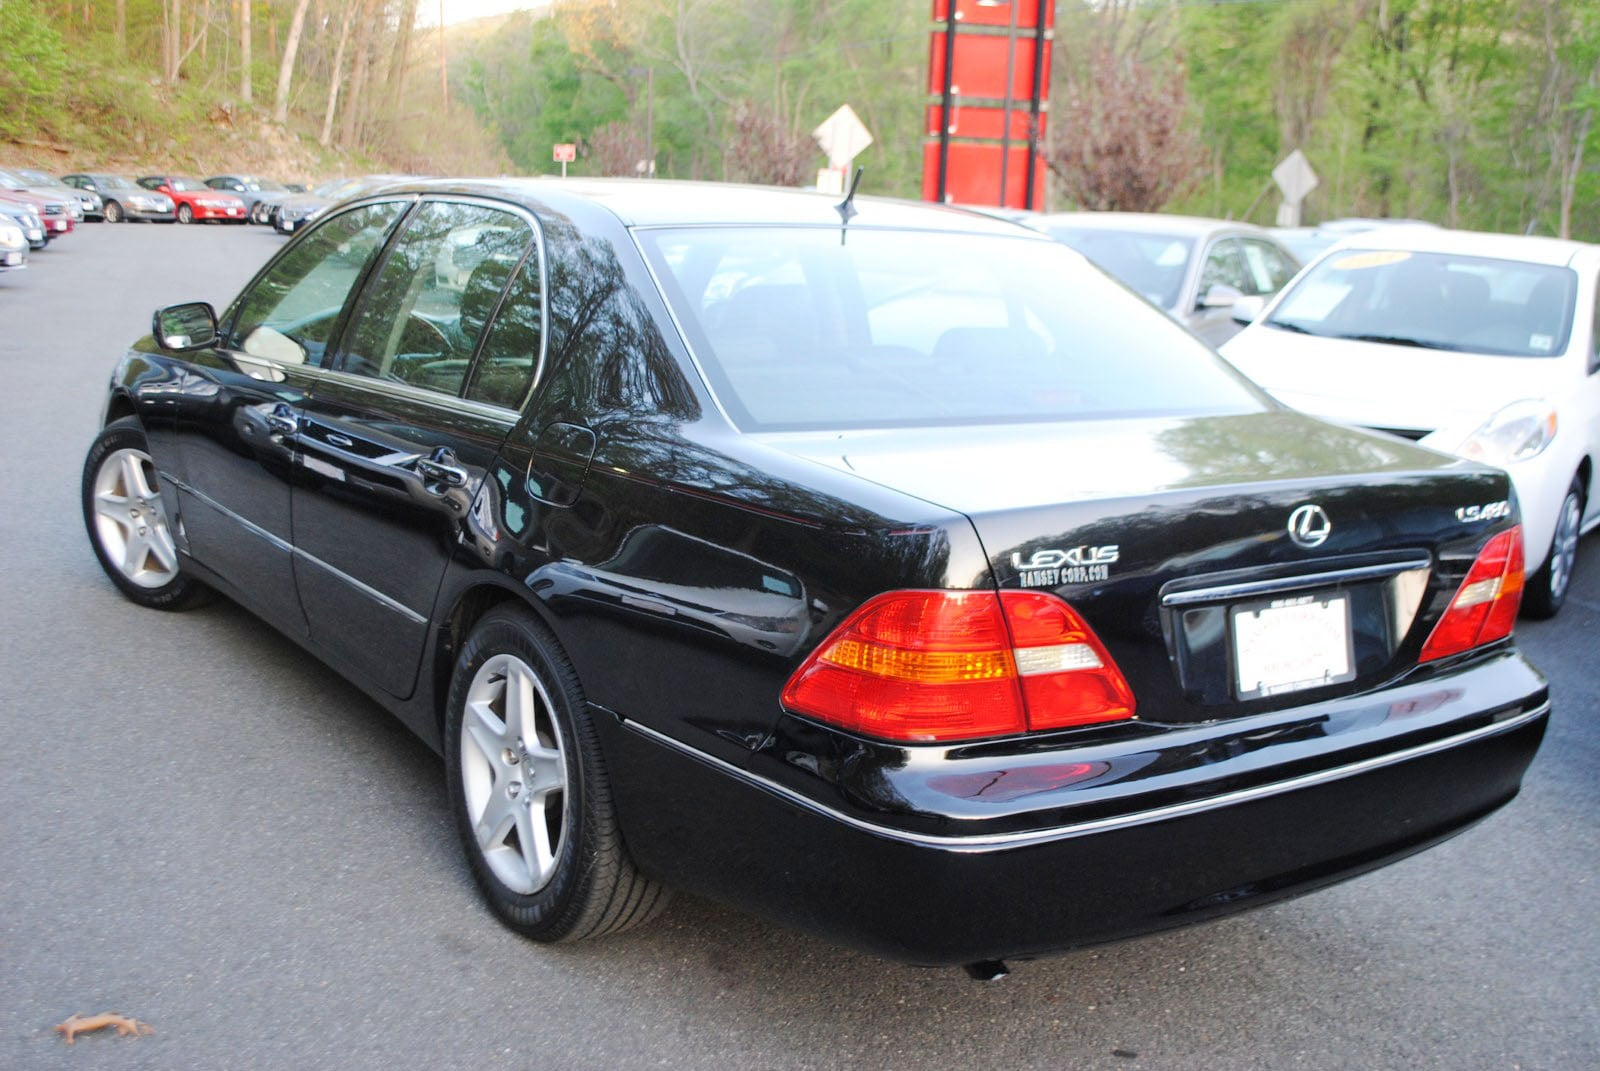 used 2001 lexus ls 430 for sale west milford nj. Black Bedroom Furniture Sets. Home Design Ideas